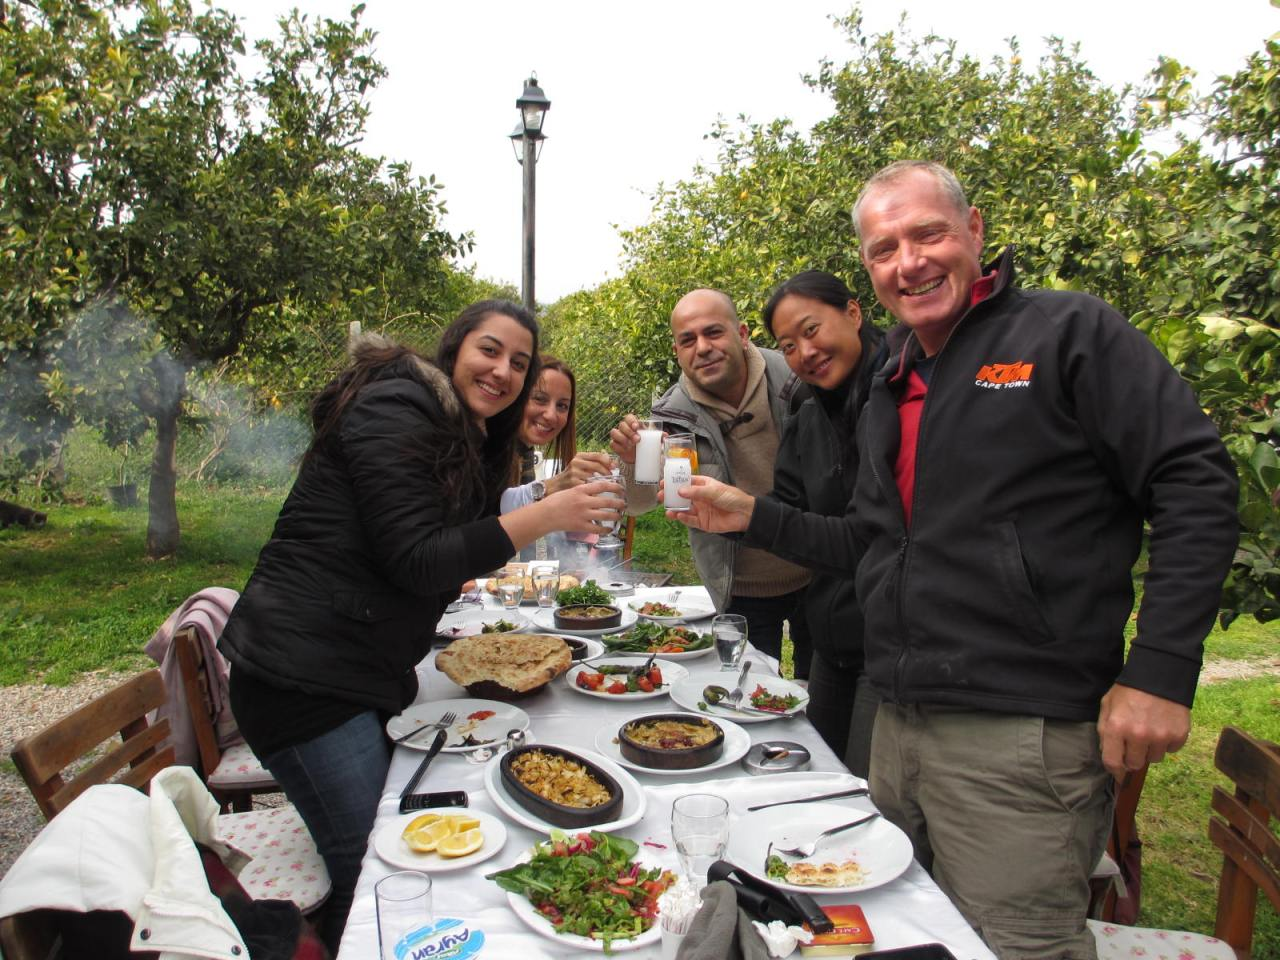 A wonderful lunch (into dinner) amongst the citrus groves at a superb restaurant in Mersin, Turkey. With our very kind hosts Metin and Sylvia who run the local KTMshop 。